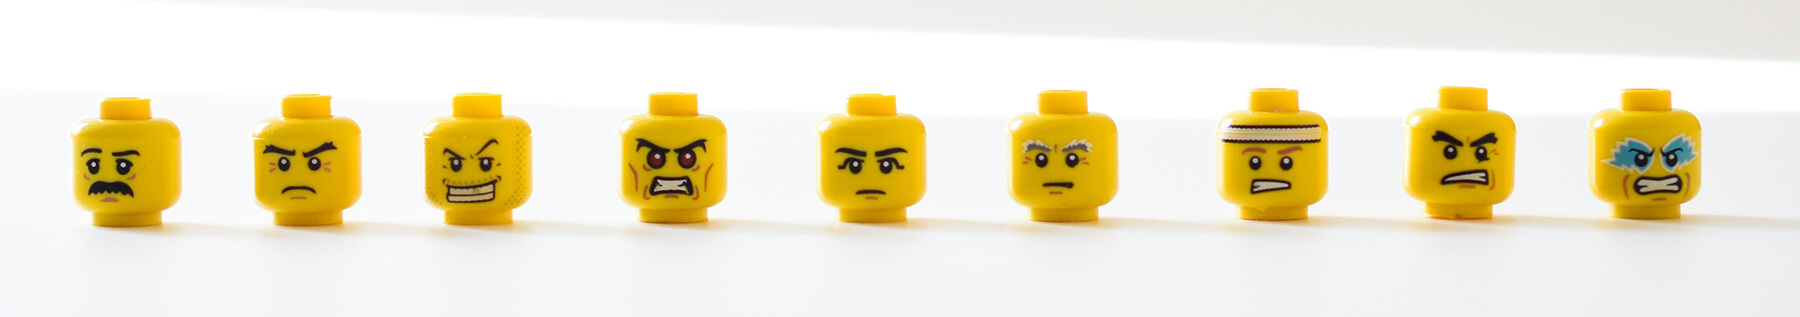 Lego Heads With Mad and Angry Faces